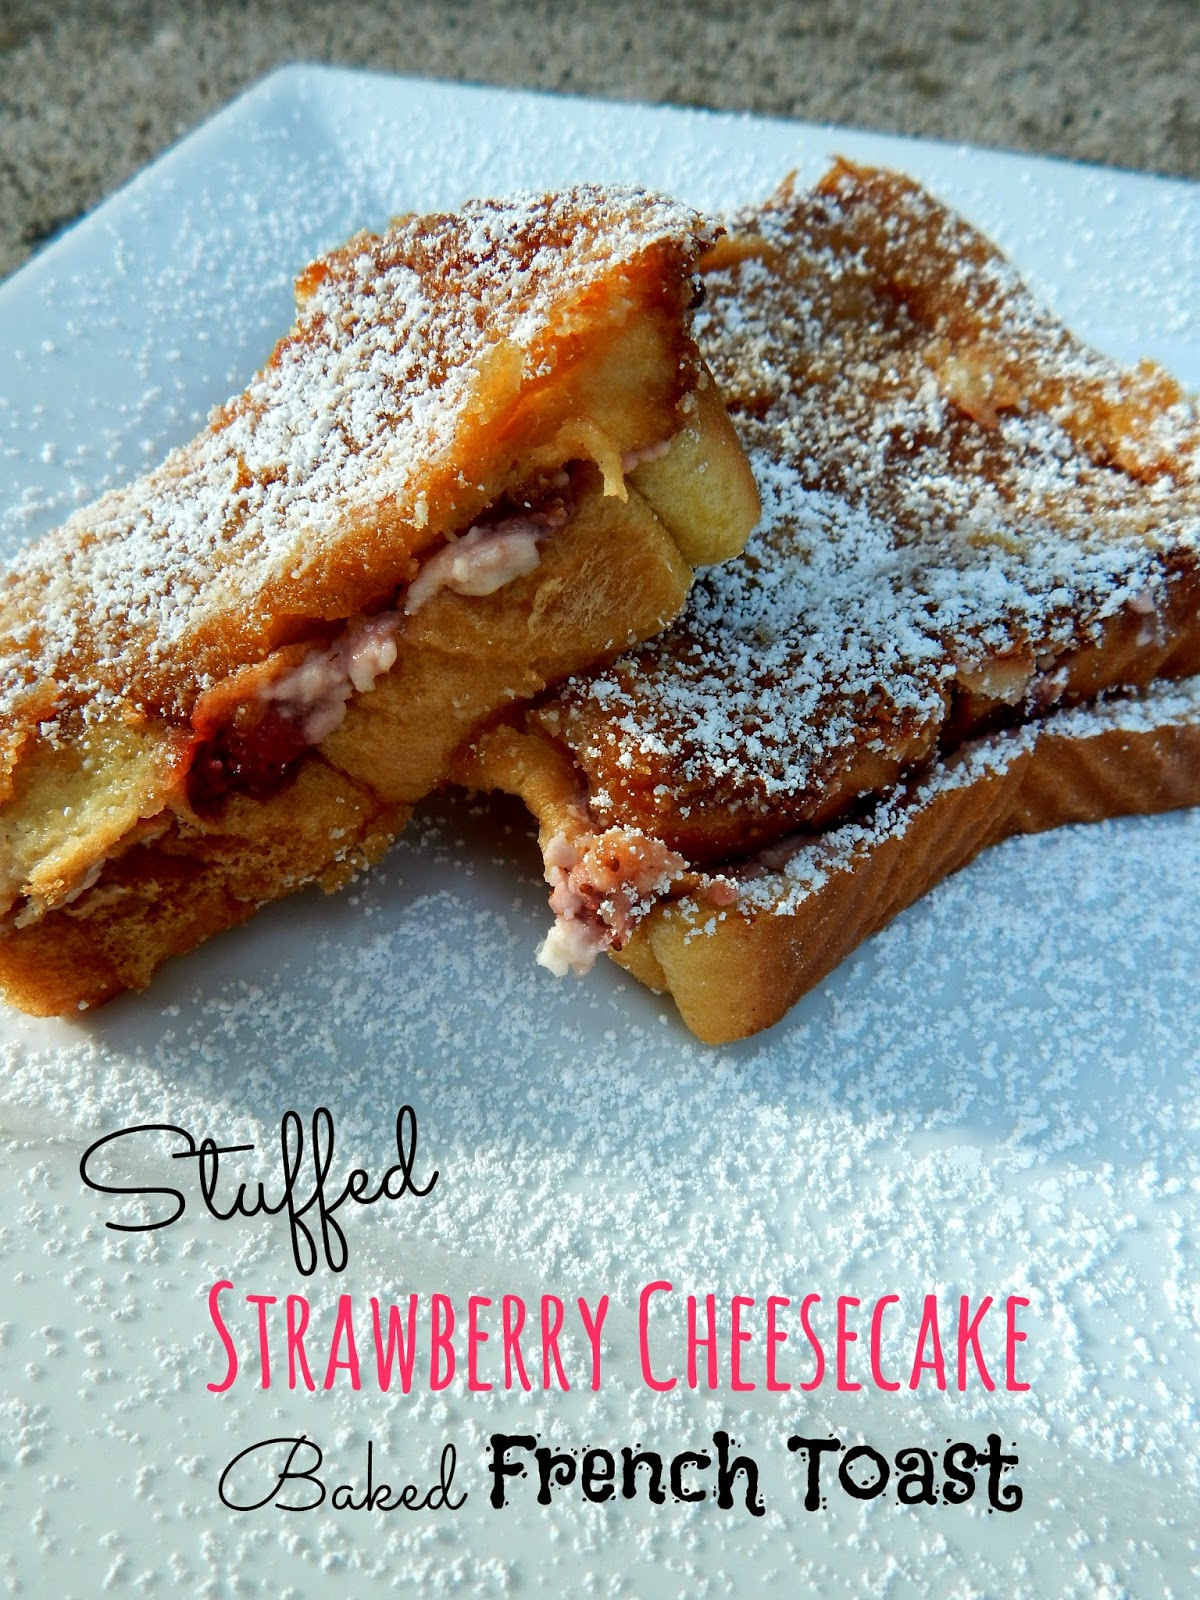 ... and Savory Eats: Stuffed Strawberry Cheesecake Baked French Toast